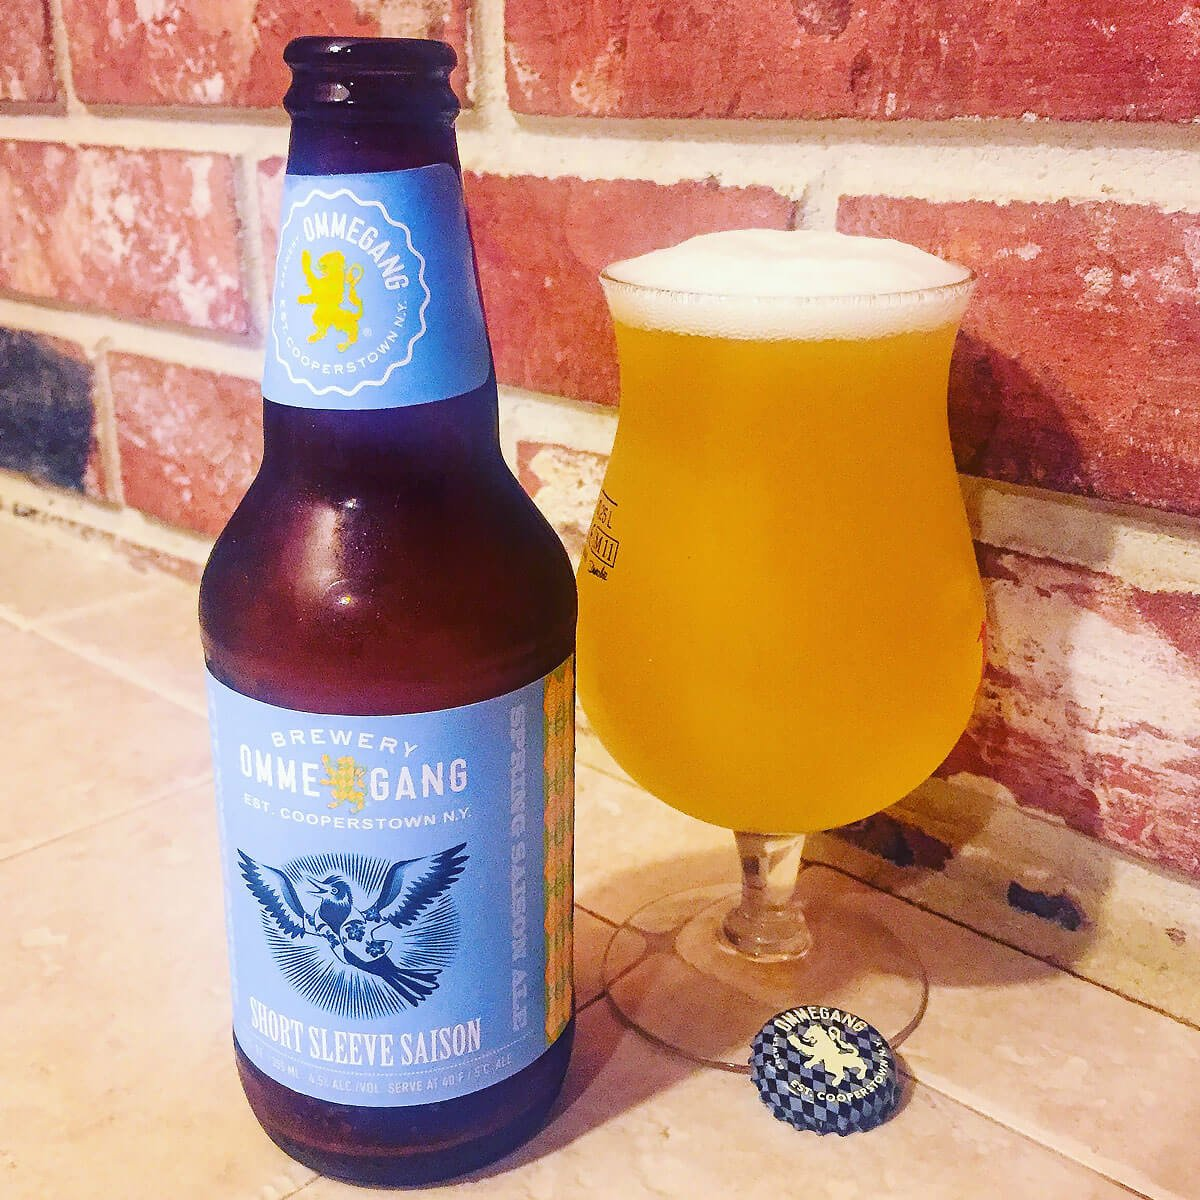 Short Sleeve Saison, a Belgian-style Saison by Brewery Ommegang